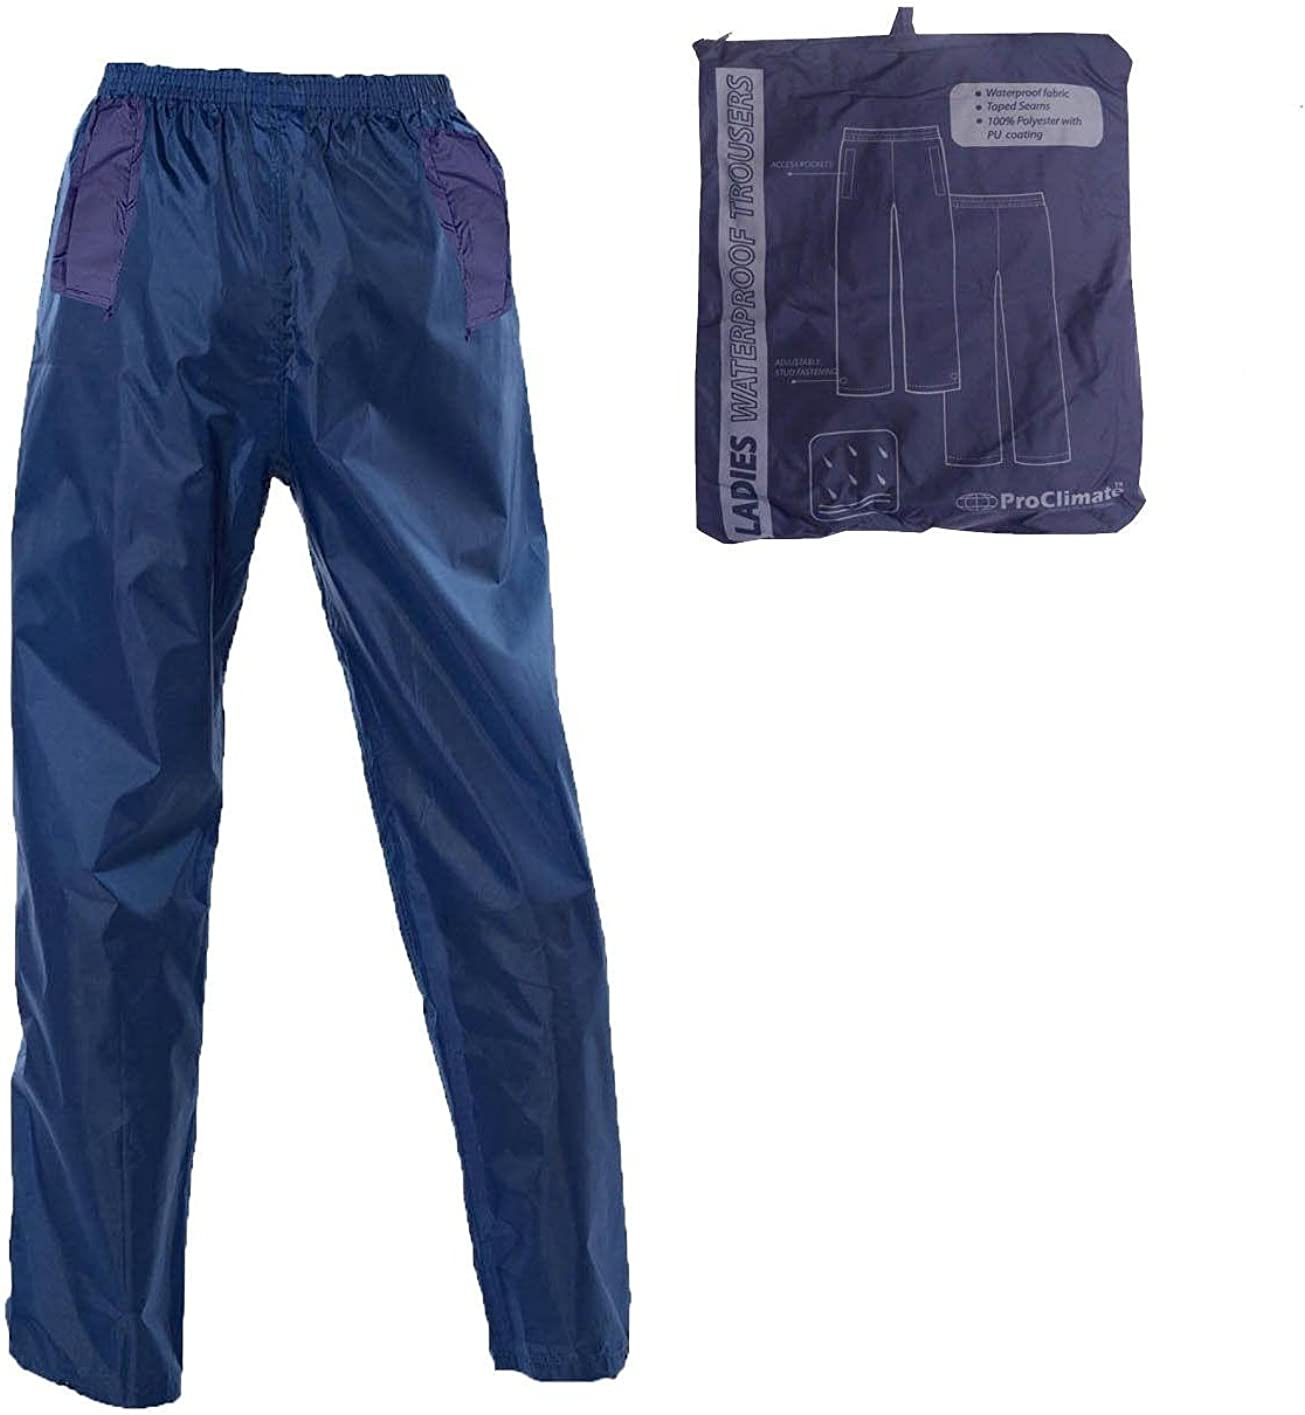 Mujer L Azul Proclimate Pantalones Impermeables Para Mujer Ropa Dayleasing Com